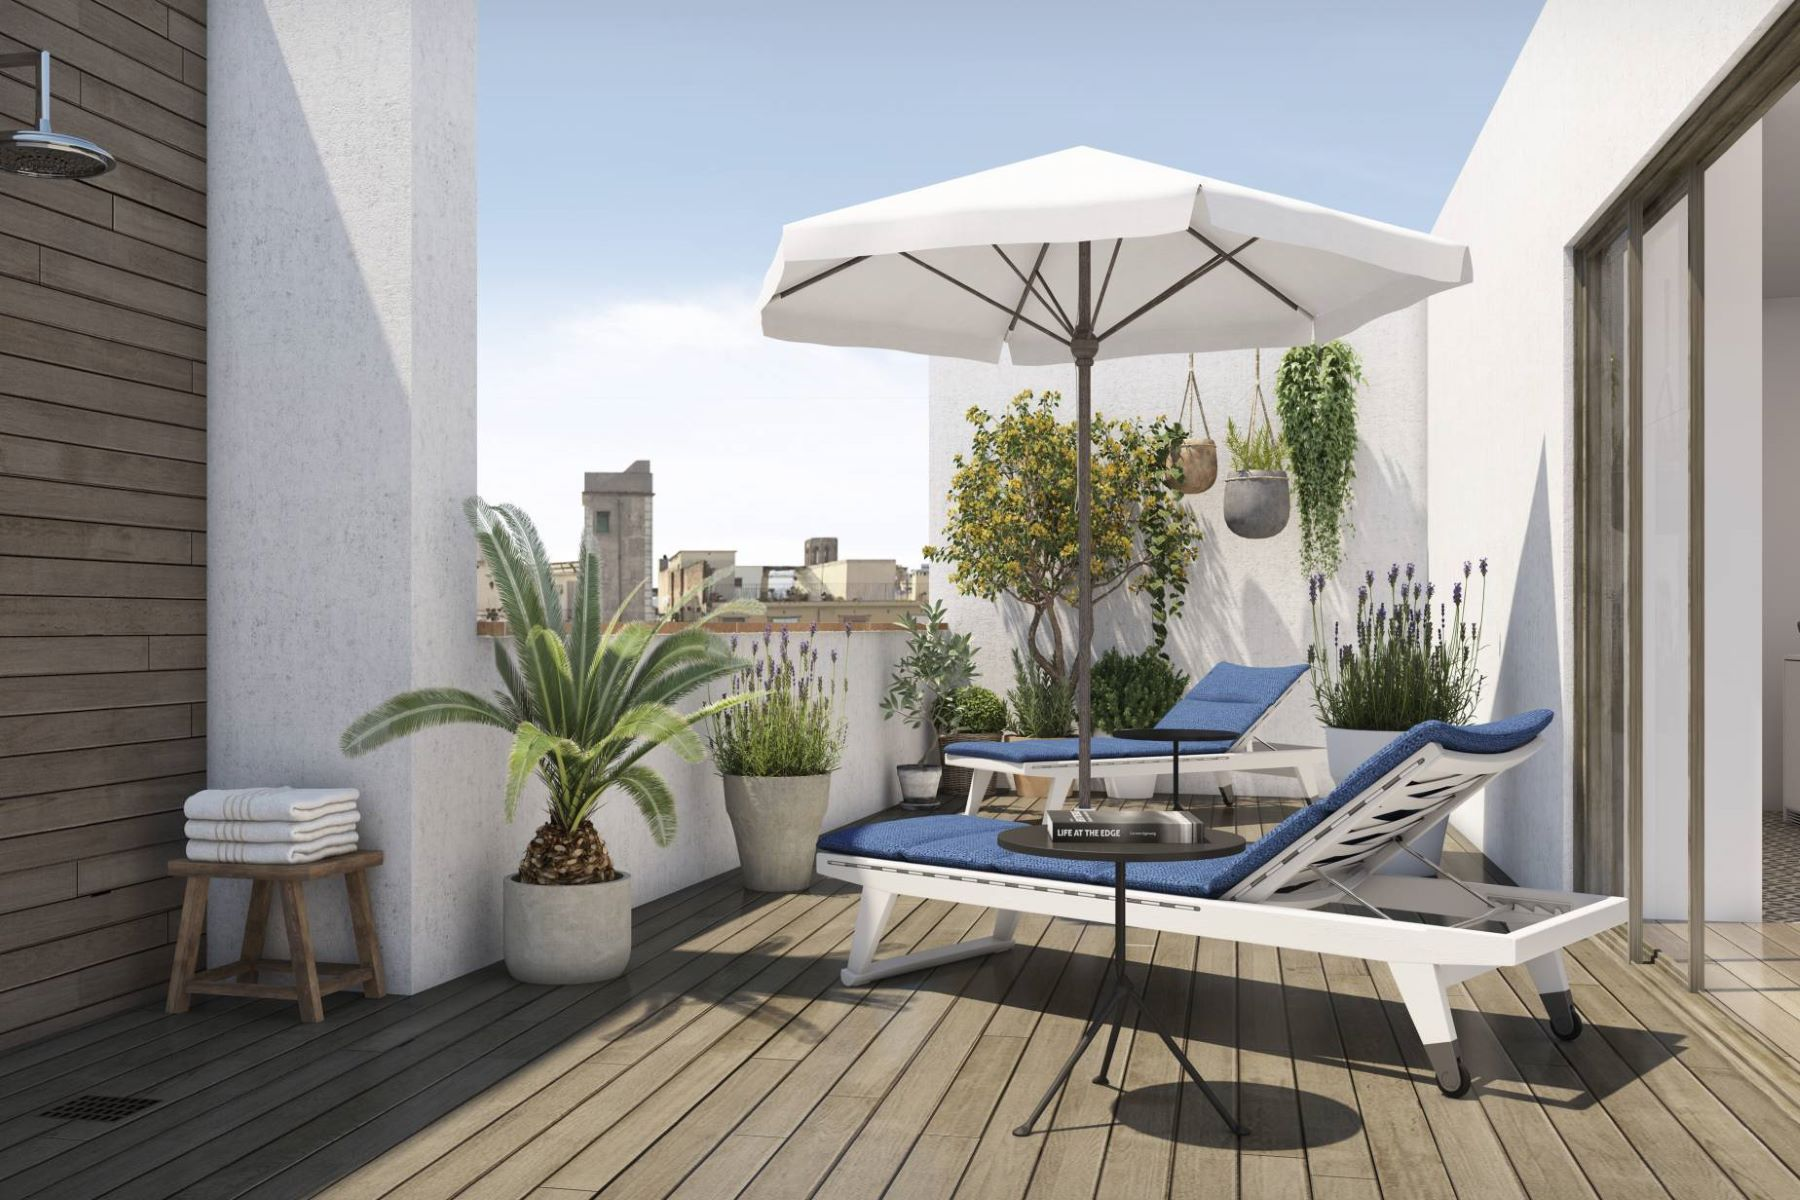 Apartment for Sale at The Main Floor Apartment of New Construction in the Gothic Quarter Barcelona City, Barcelona, 08002 Spain